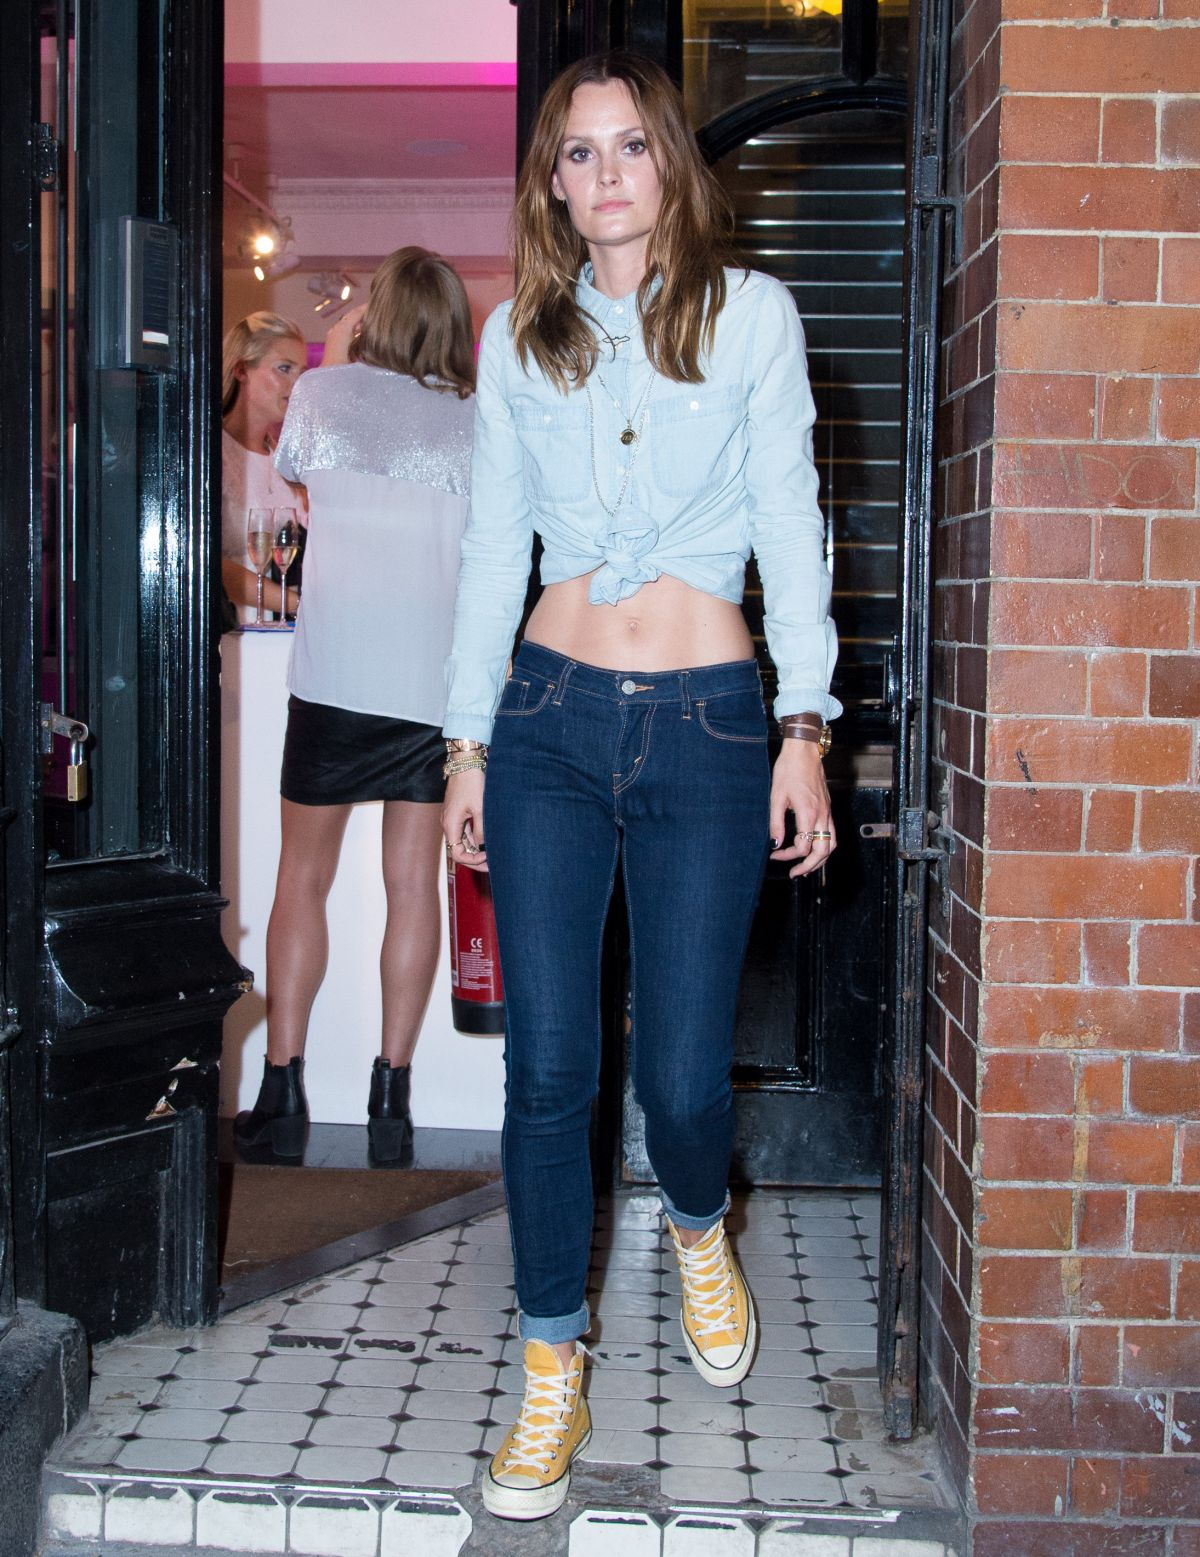 HQ Photos of Charlotte De Carle At Impulse Changing Room A Pop Up For Reinvention In London